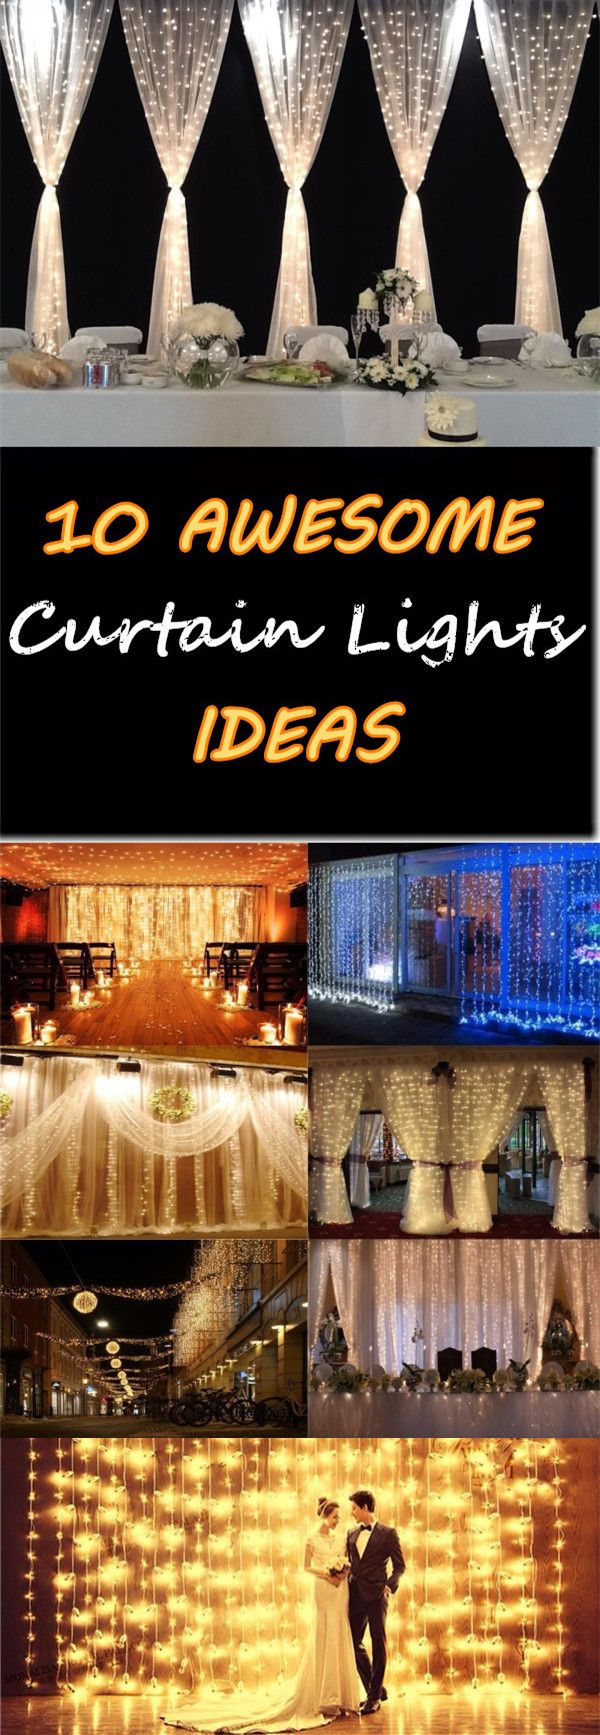 Awesome curtain lights ideas :) Click the picture or the Visit button you can get the item in cheap ~Cheers#lighting #christmas #christmasdecor #christmasdecorations #primitivechristmas #decoration #xmas #christmasjoy #noël #likeoldtimes #vintage #winterlandscape #vintagelove #inspiration #painting #christmaspainting #christmastime